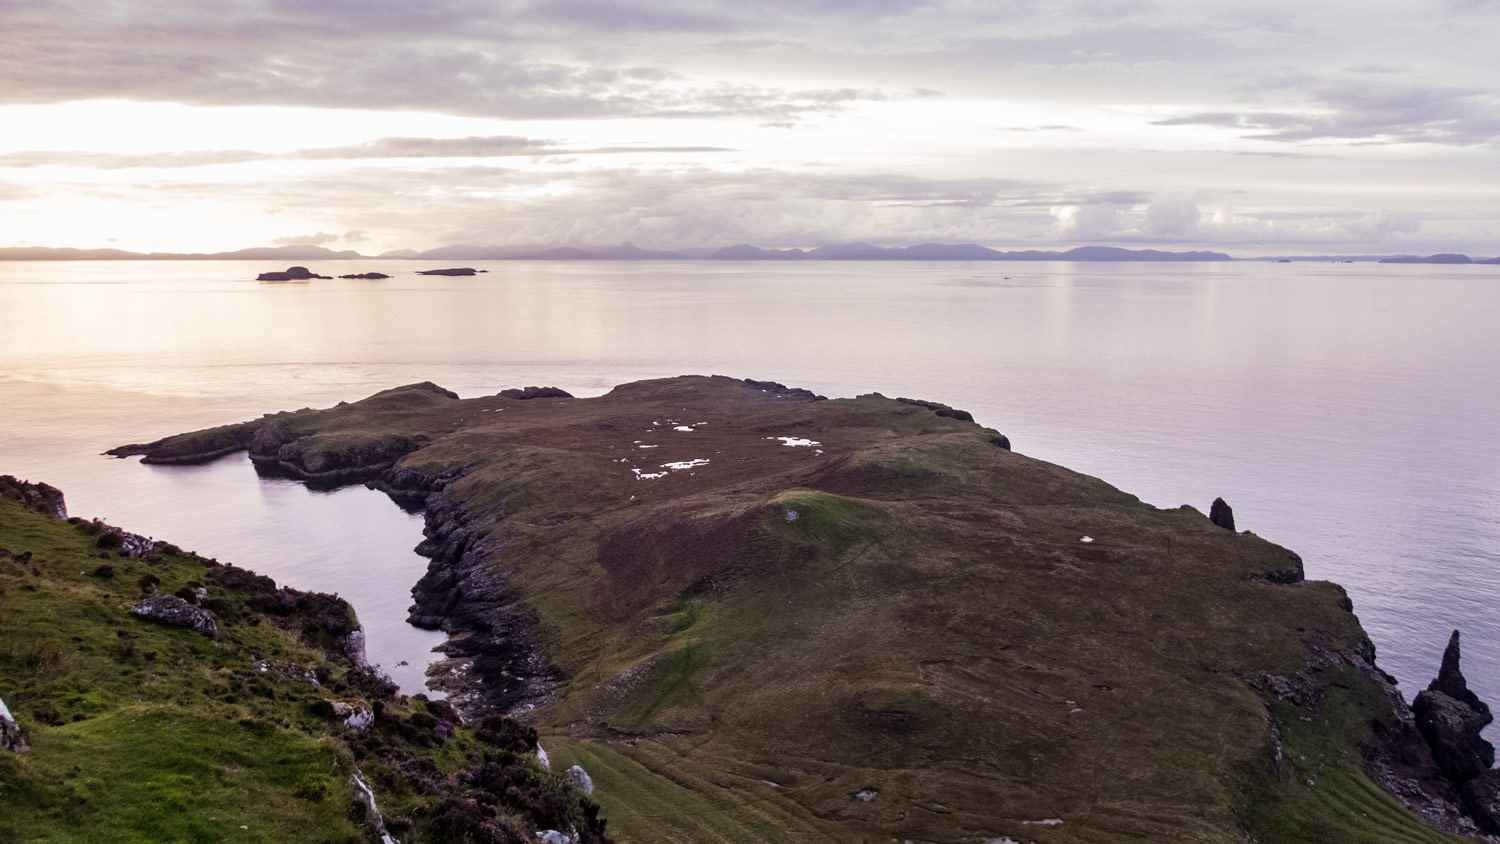 Arrived at The Lookout bothy, this was our view north towards Lewis and Harris across the Hunish headland.